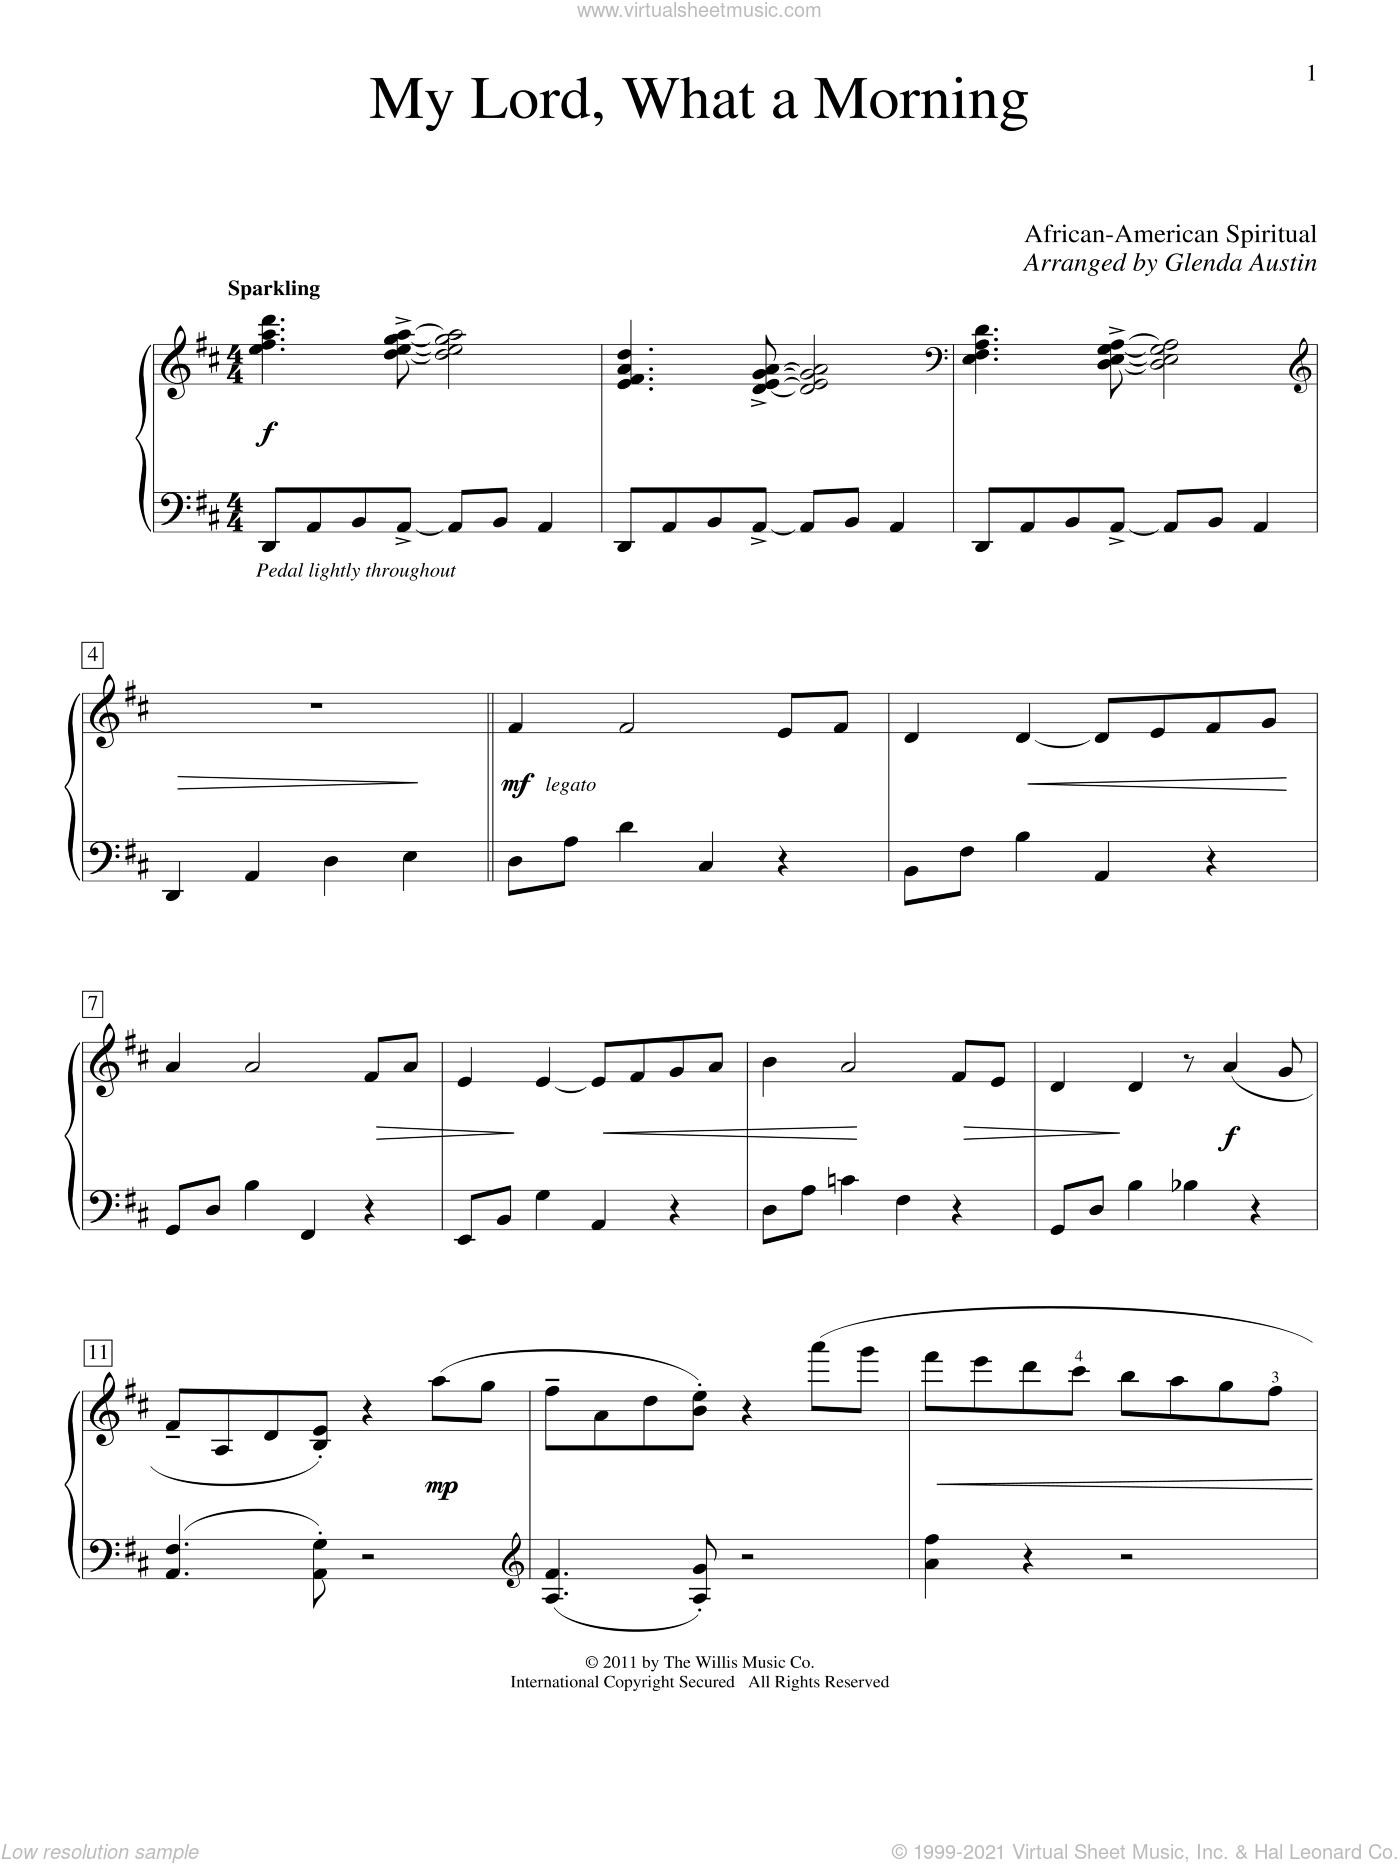 My Lord, What A Morning sheet music for piano solo (elementary)  and Glenda Austin. Score Image Preview.